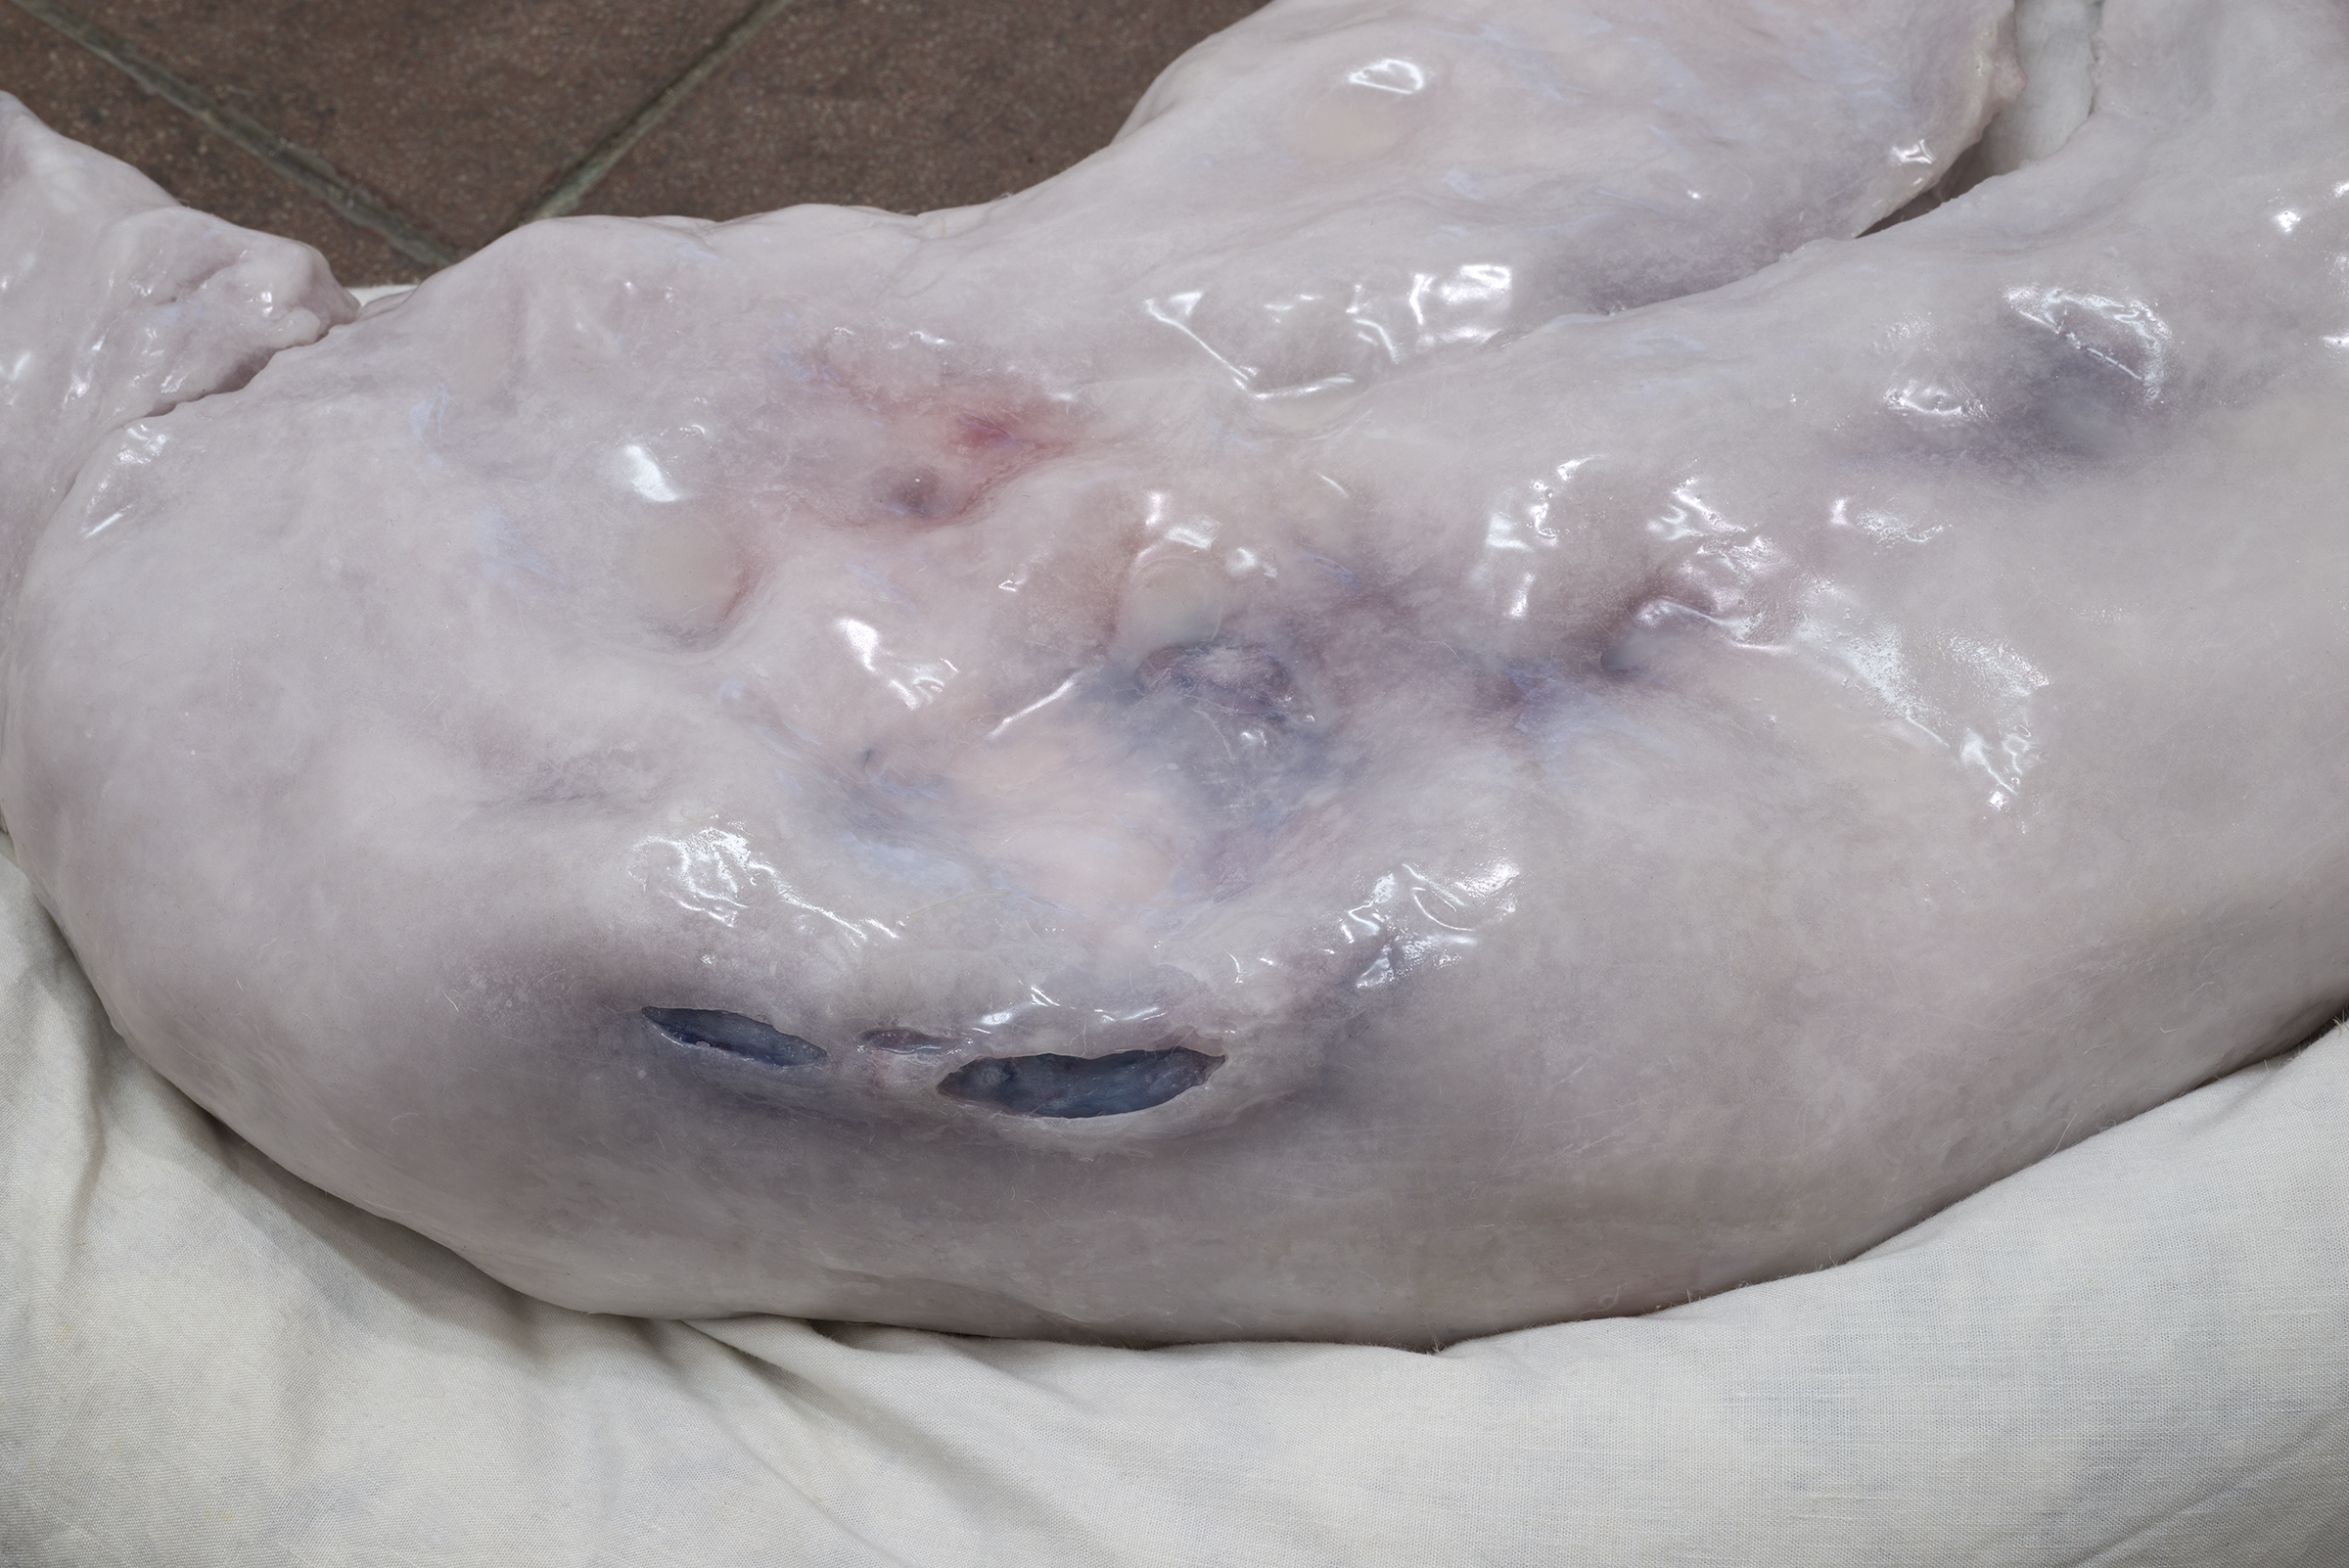 Ivana Basic, Asleep , 2015,body, feathers, wax, pillows,weight, pressure, silicone,28 x 19 x 4.5 in